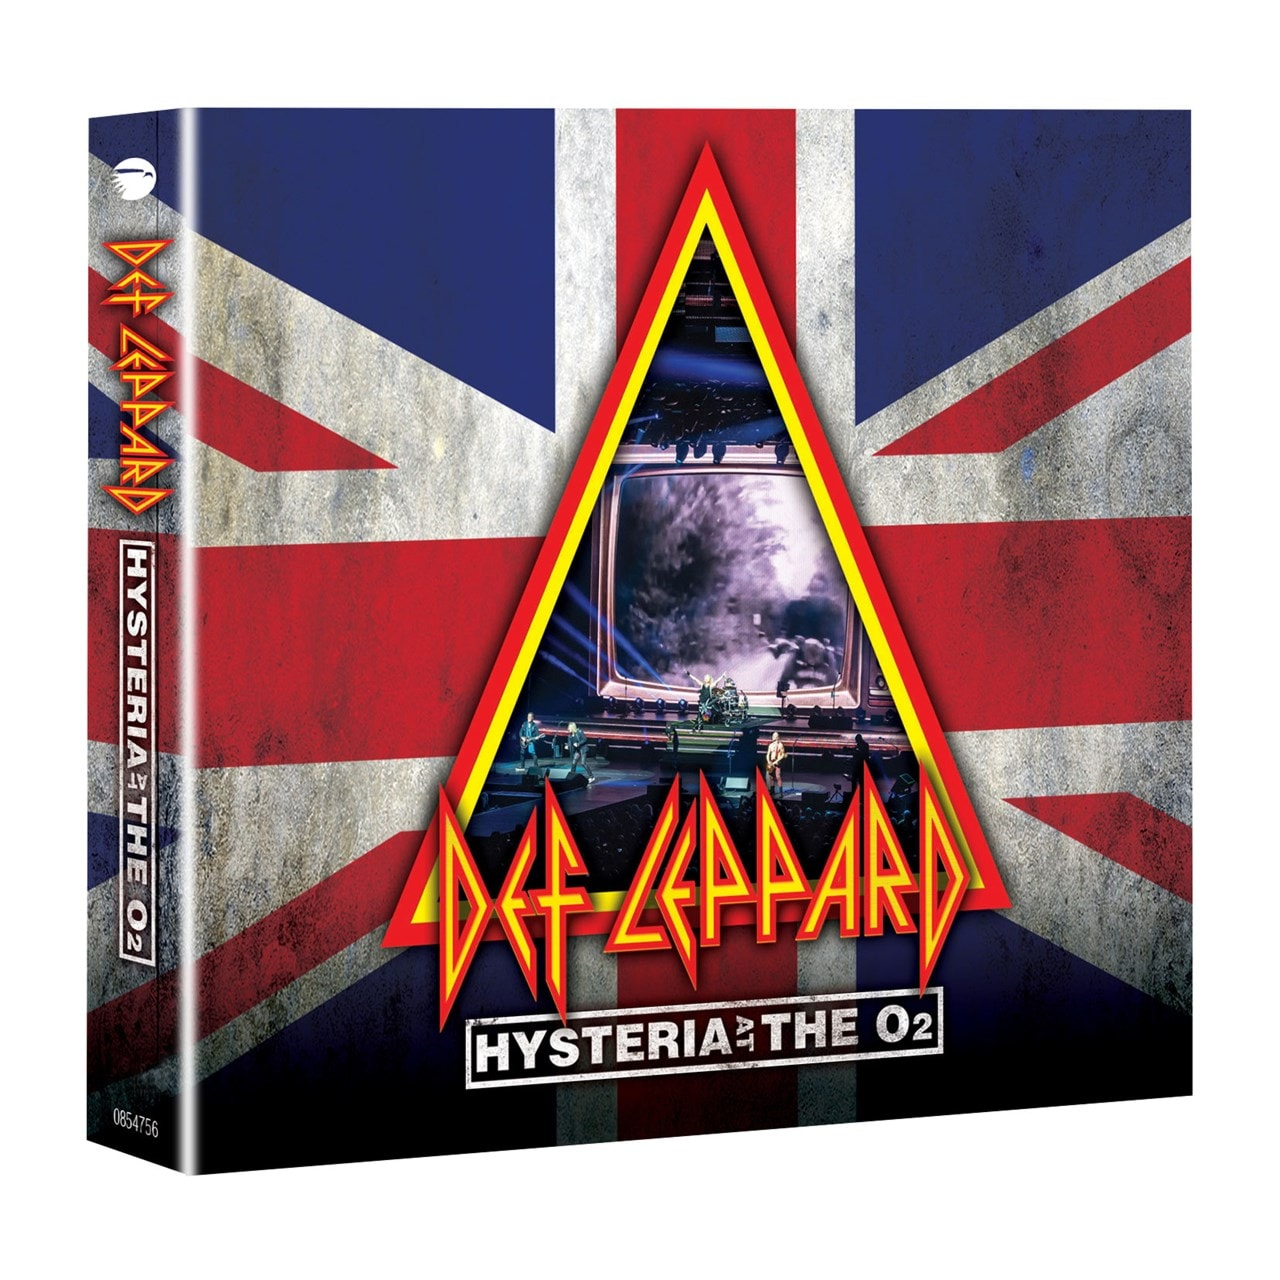 Def Leppard: Hysteria at the O2 - 1